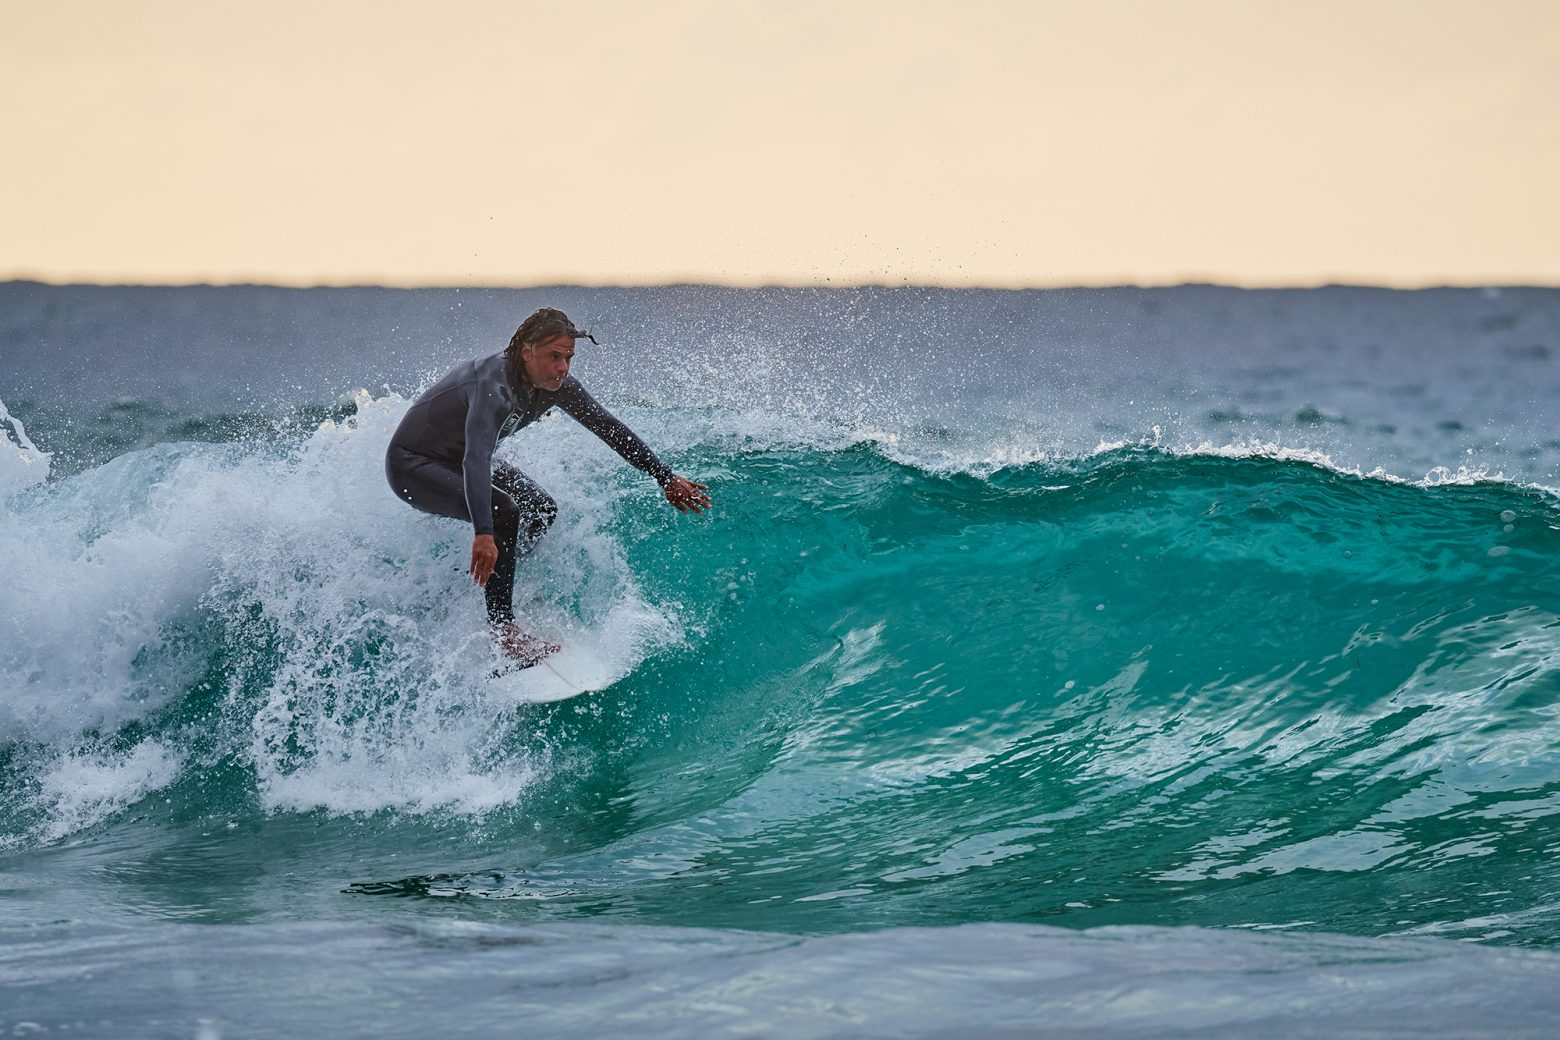 Christian, lone wolf hunting on the shorey lefts at South Bondi